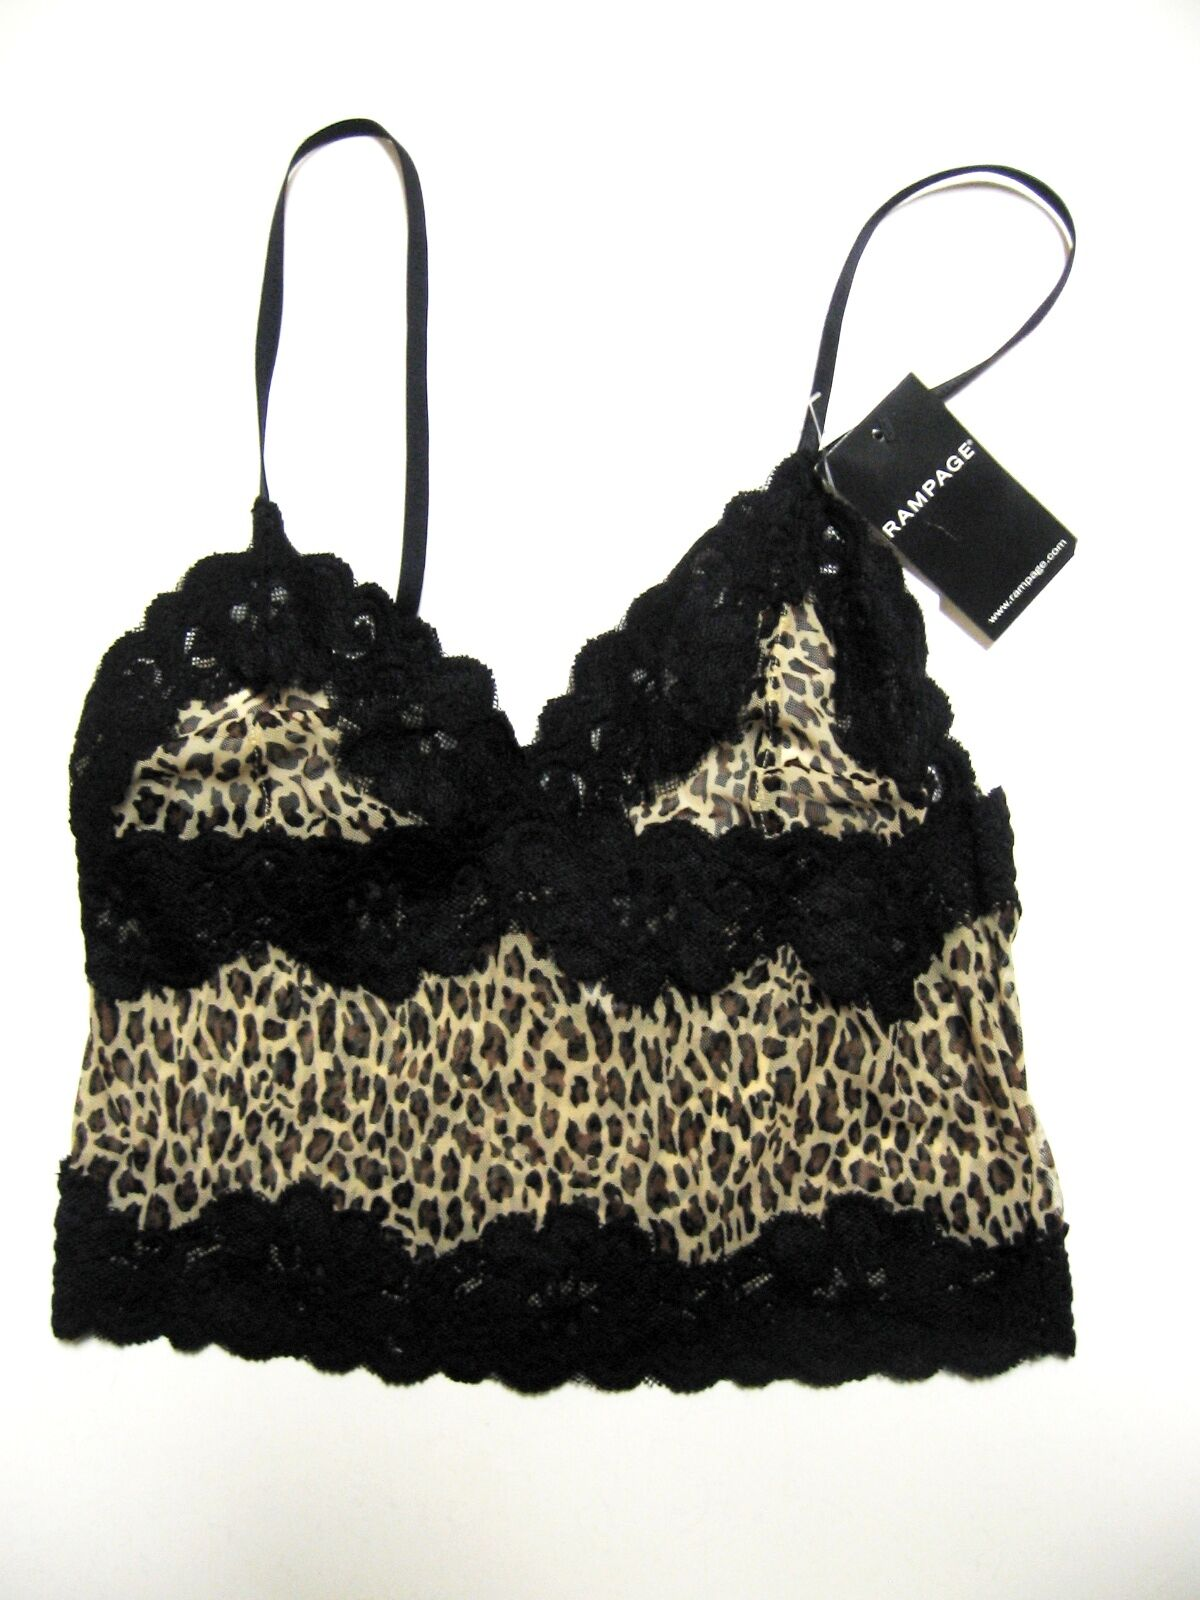 www.prominentresults.com :A341 Rampage NEW Black Animal Prints Contrast Lace Stretch Nylon Camisole S PR